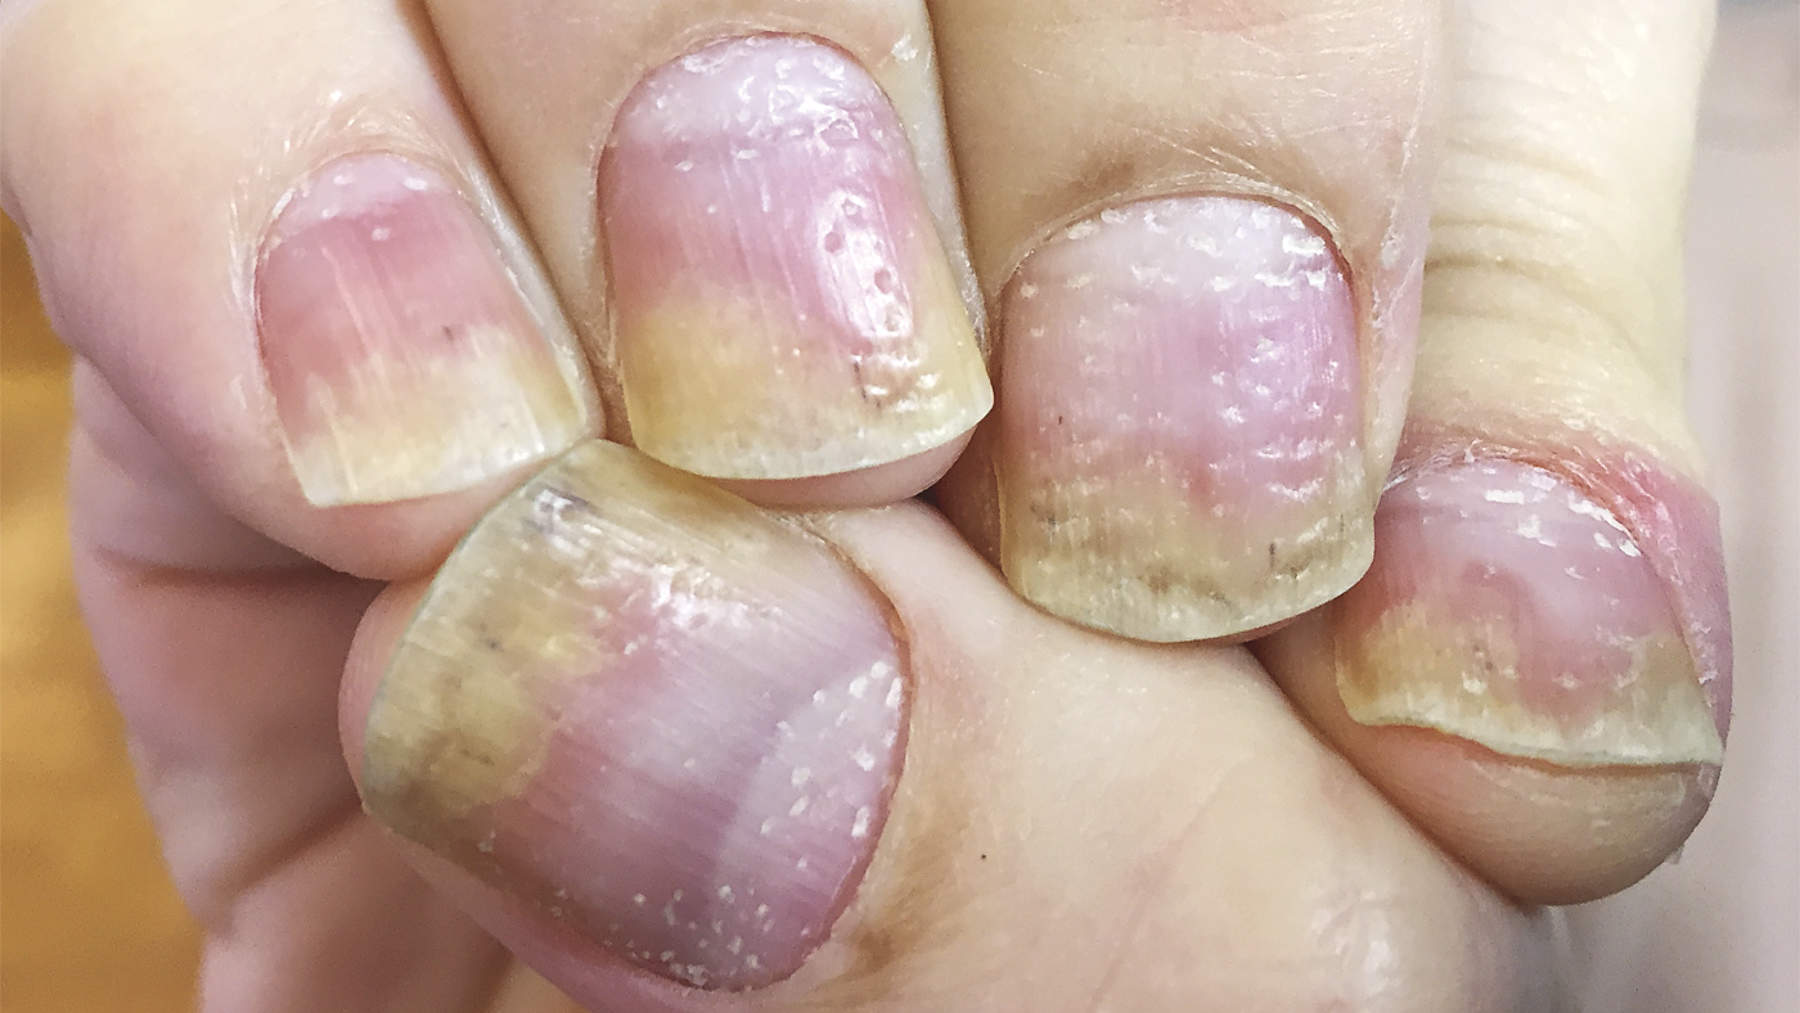 This Man\'s Pitted Nails Turned Out to Be Psoriasis - Health